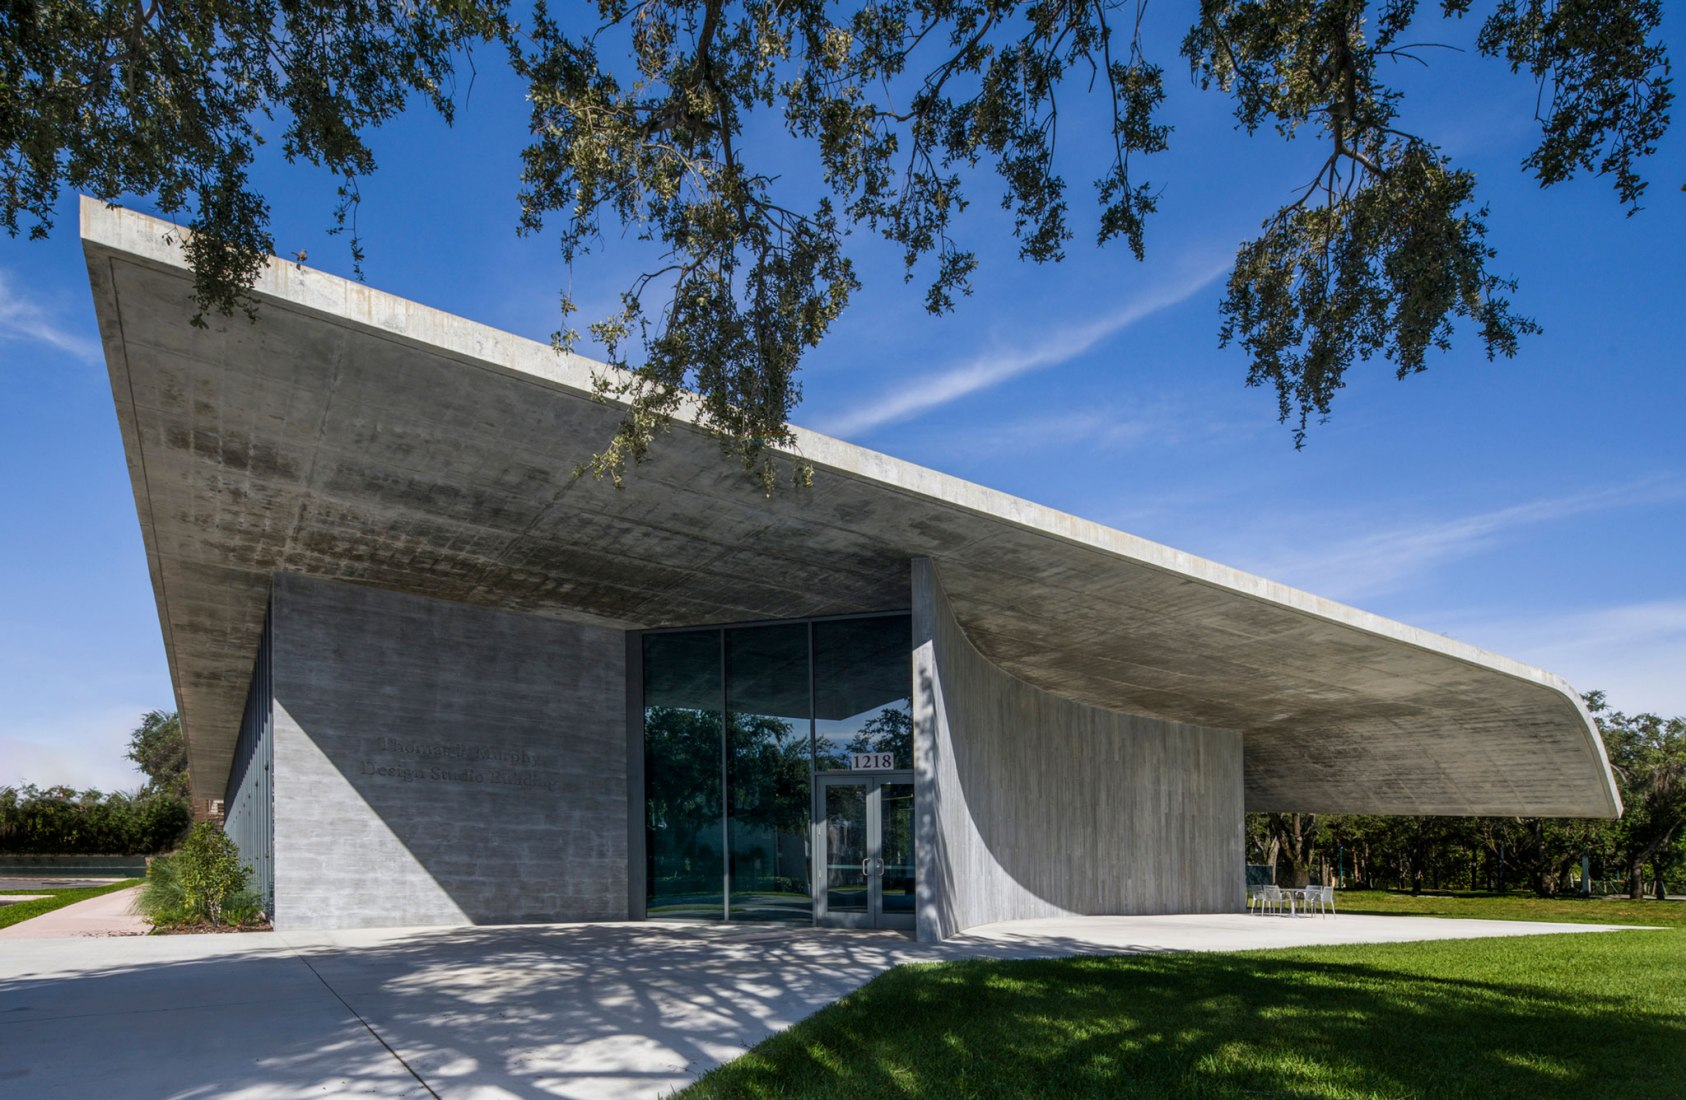 Thomas P. Murphy Studio Building for the University of Miami School of Architecture by Arquitectonica. Photograph by Robin Hill